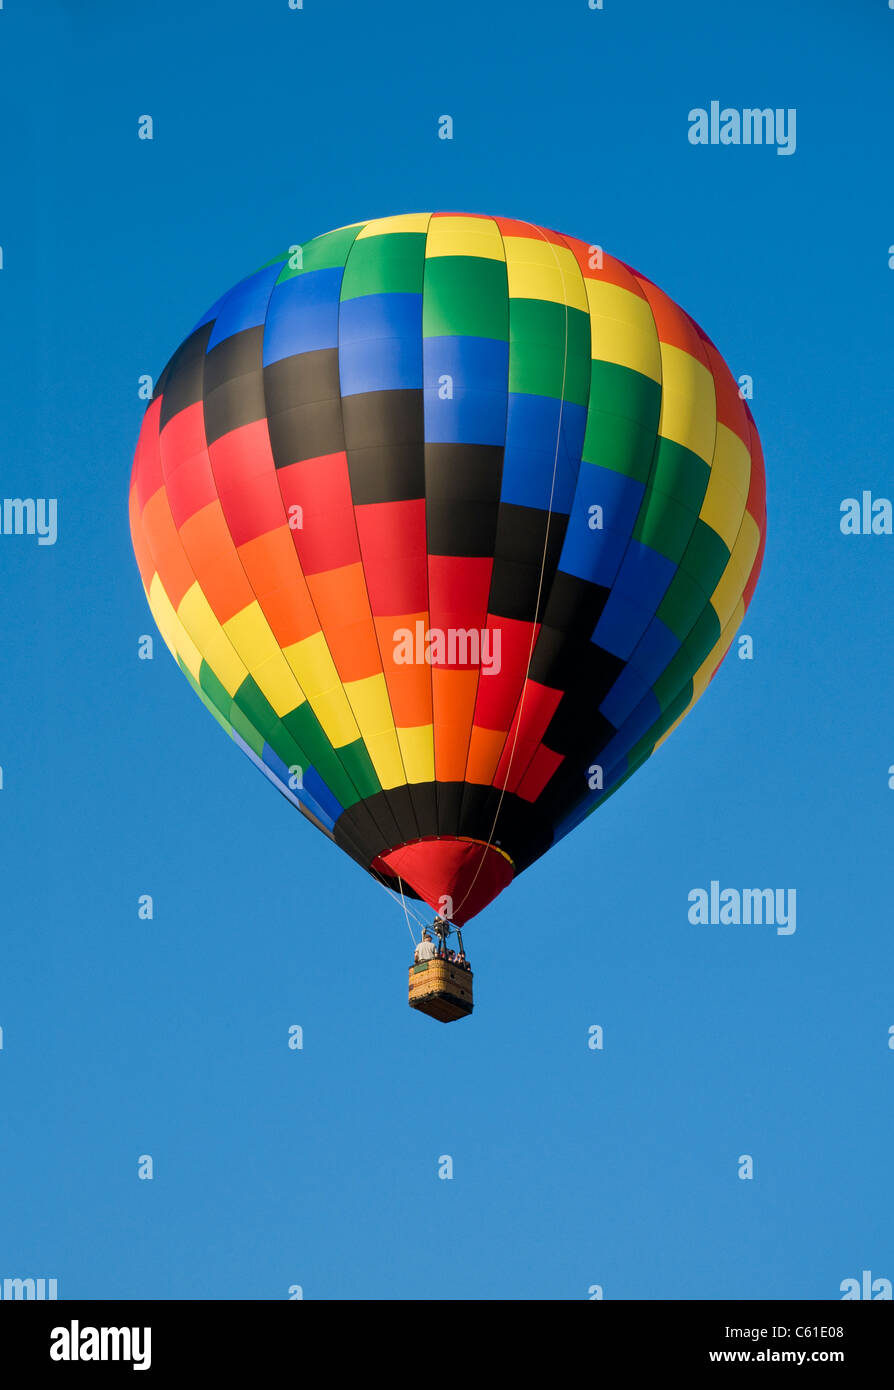 Colorful hot-air balloon floating against blue sky - Stock Image